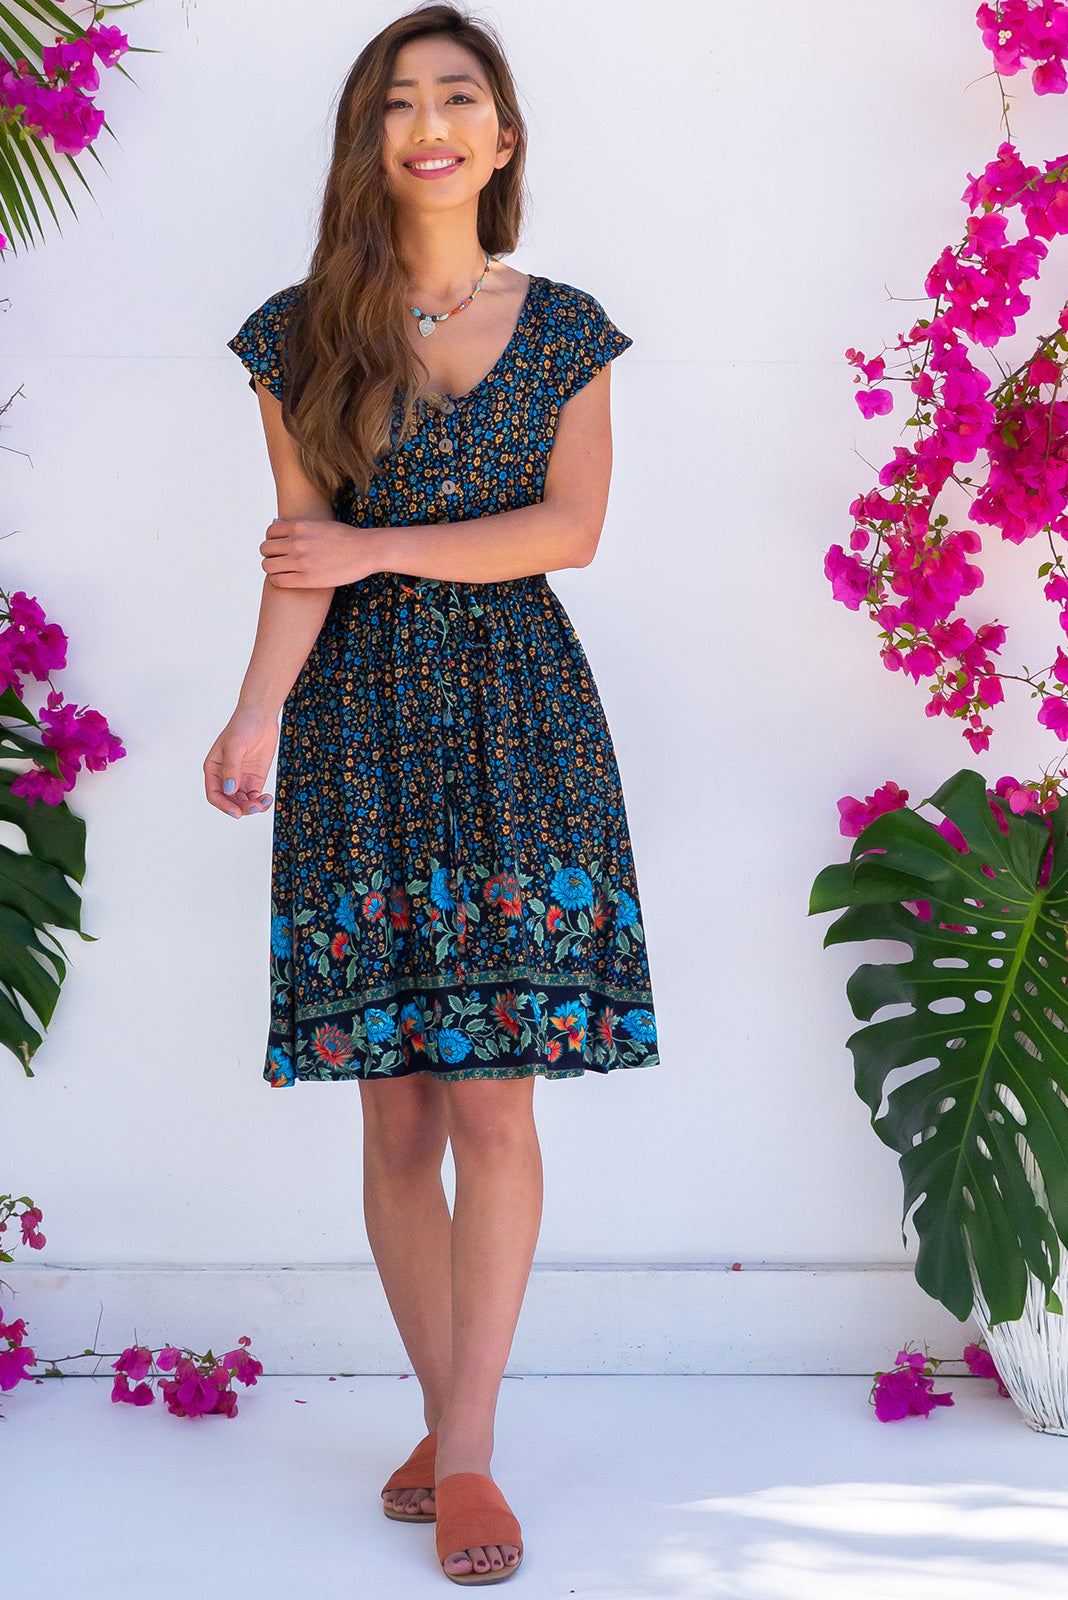 Juniper Folklore Navy Dress is a bohemian inspired summer dress. A bright floral print on a black based rayon fabric. Features side pockets and a drawstring waist.